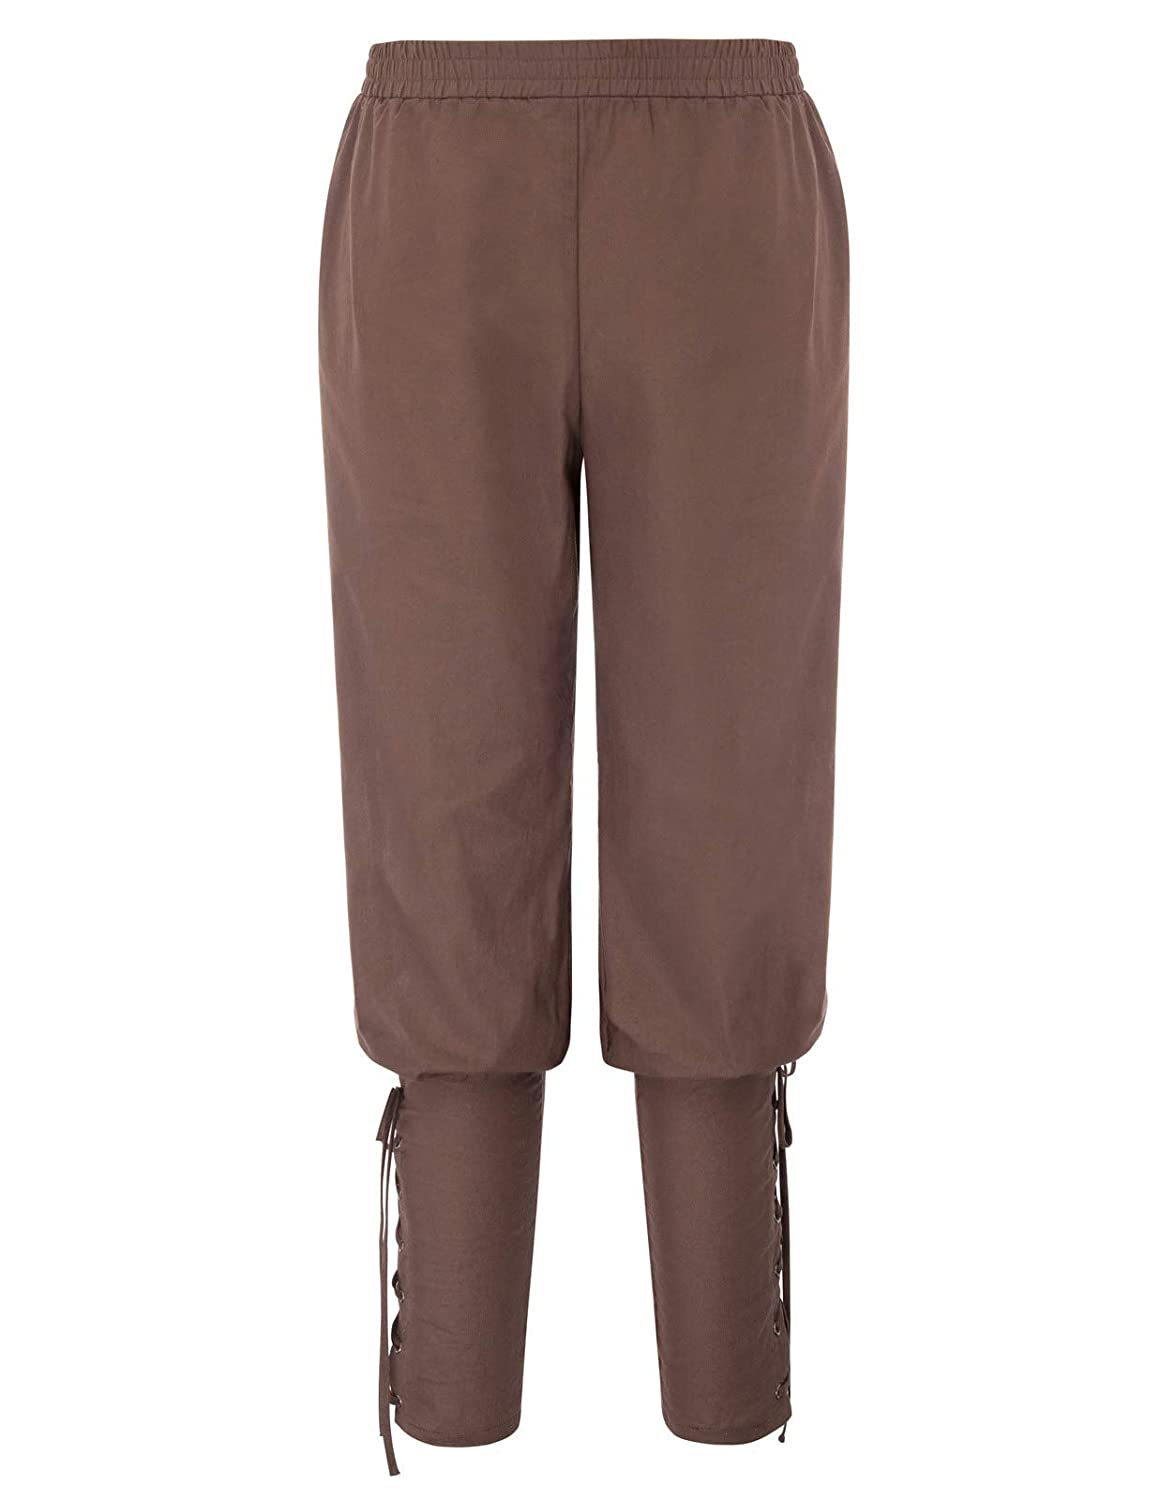 Men's Steampunk Pants & Trousers SCARLET DARKNESS Mens Renaissance Pants Pirate Costume Ankle Banded Trousers $24.99 AT vintagedancer.com